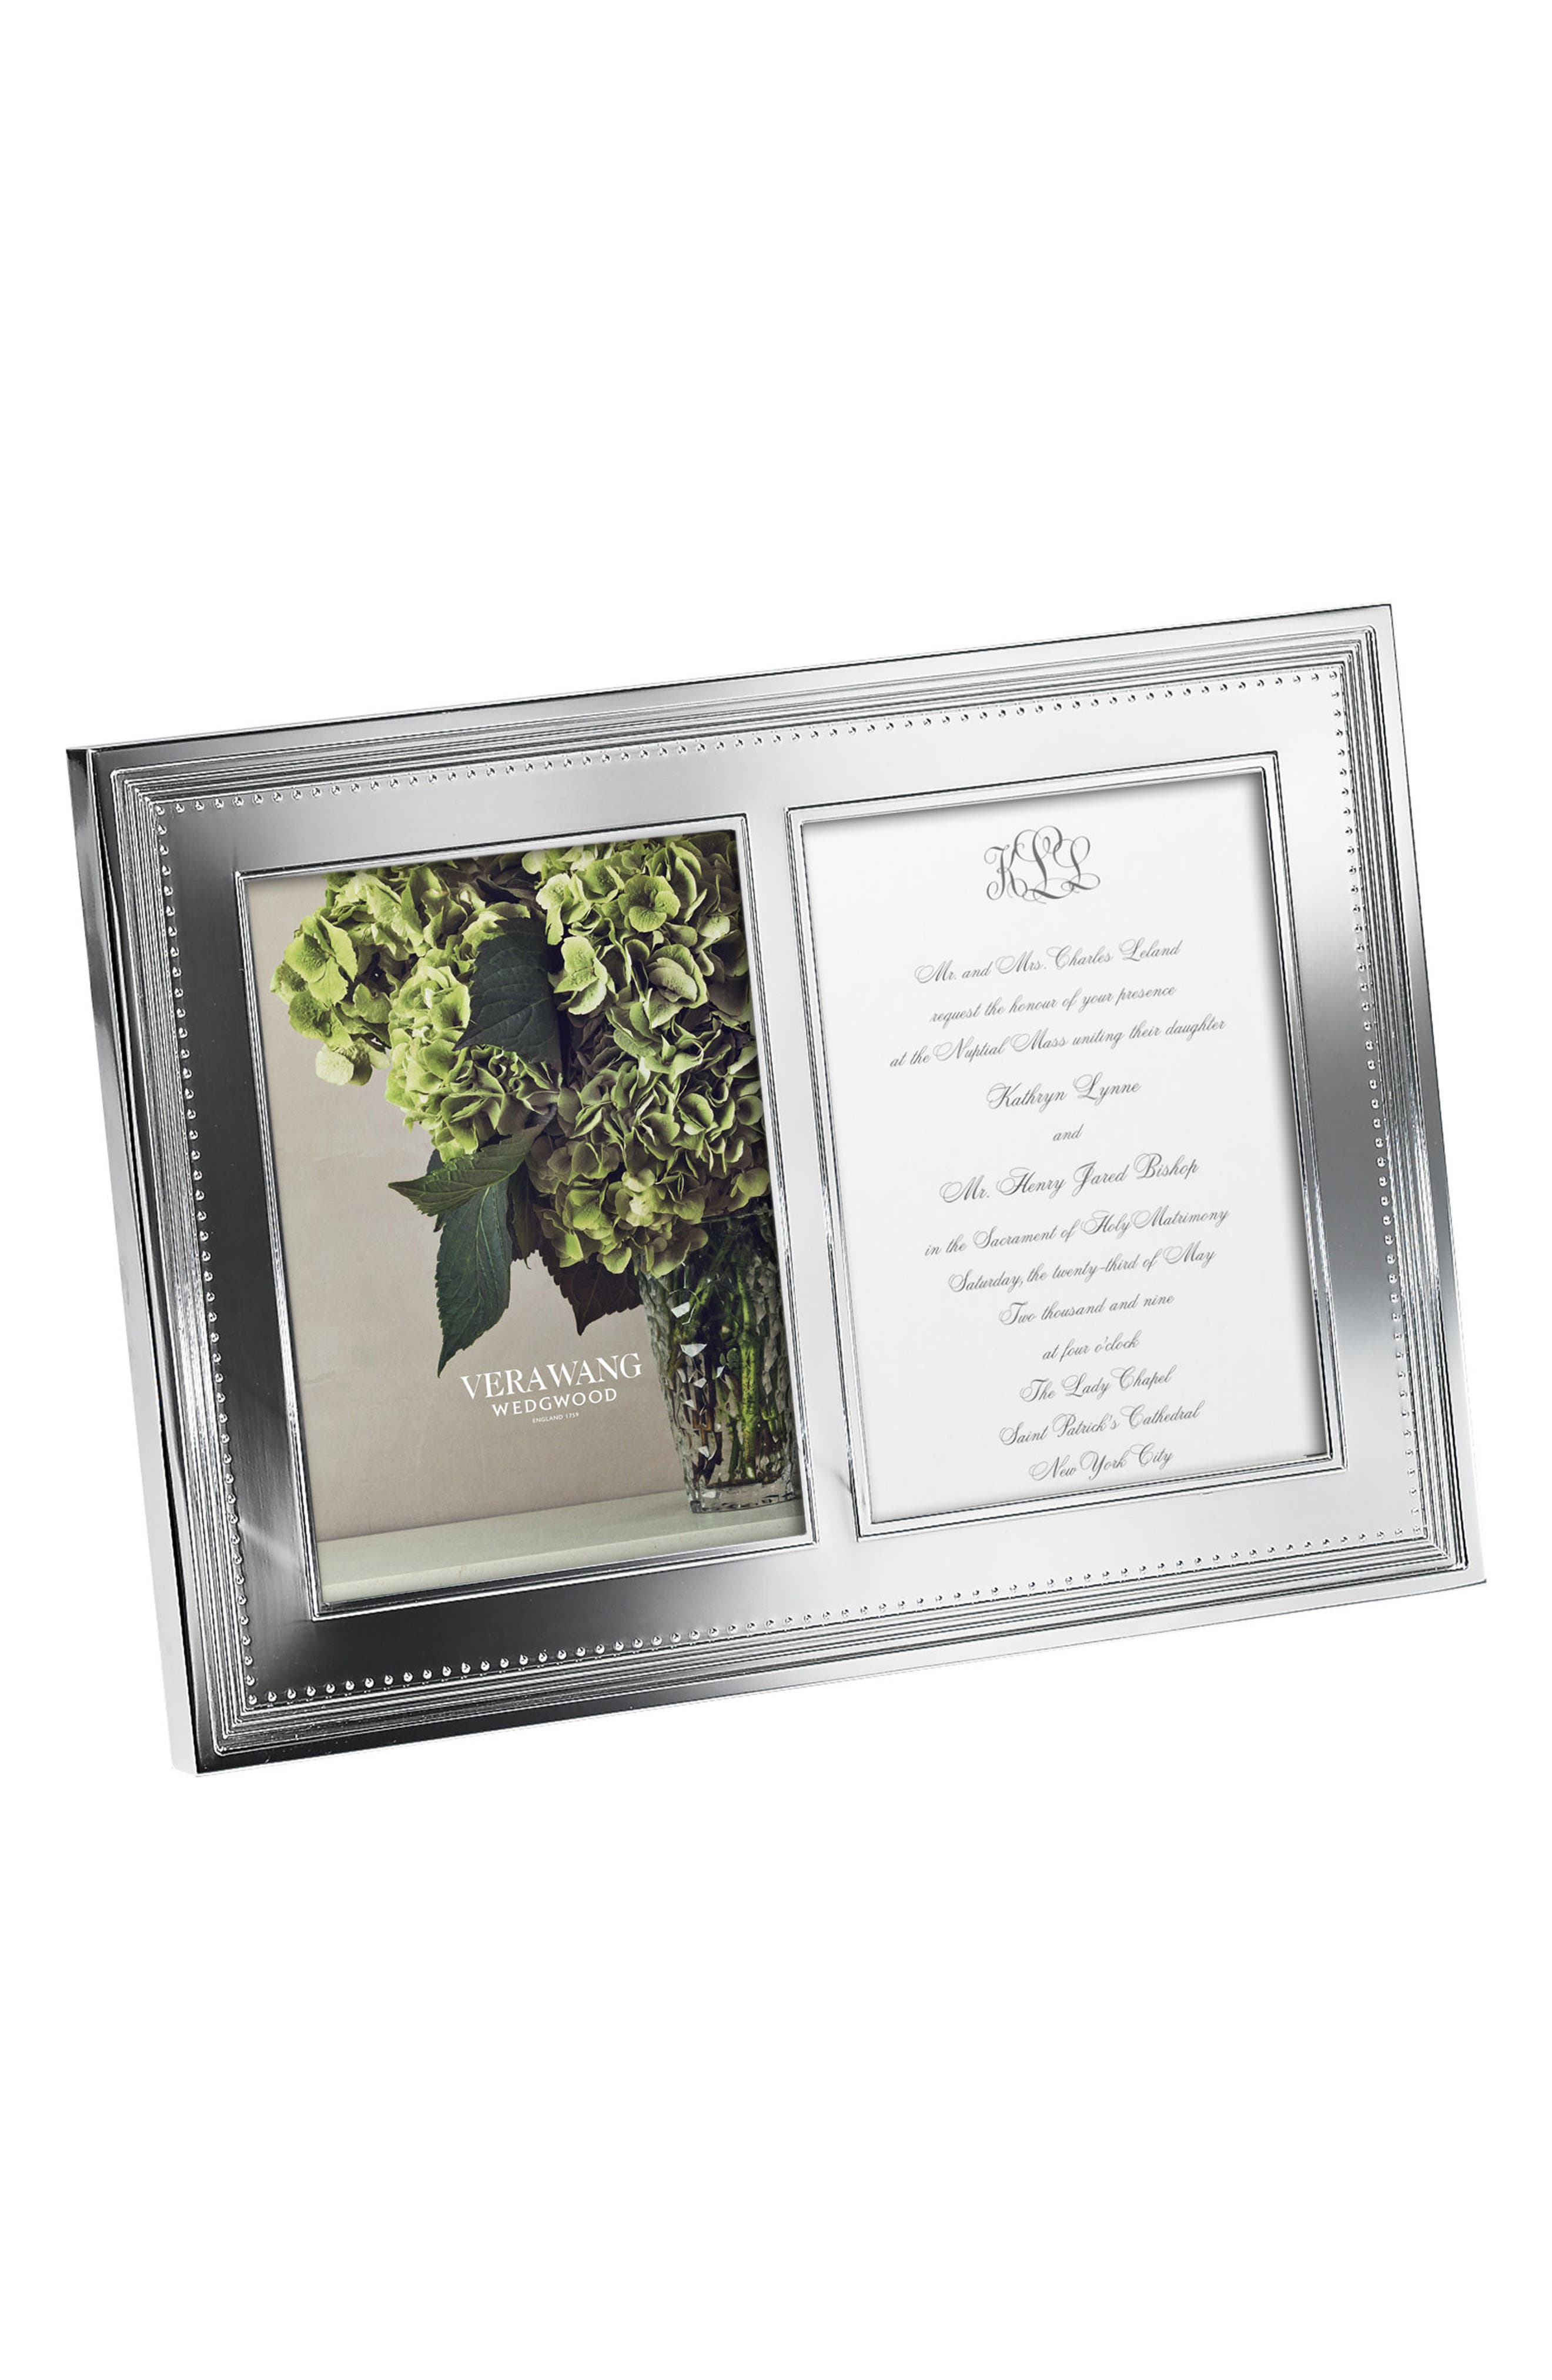 Alternate Image 1 Selected - Vera Wang x Wedgwood Grosgrain Double Picture Frame